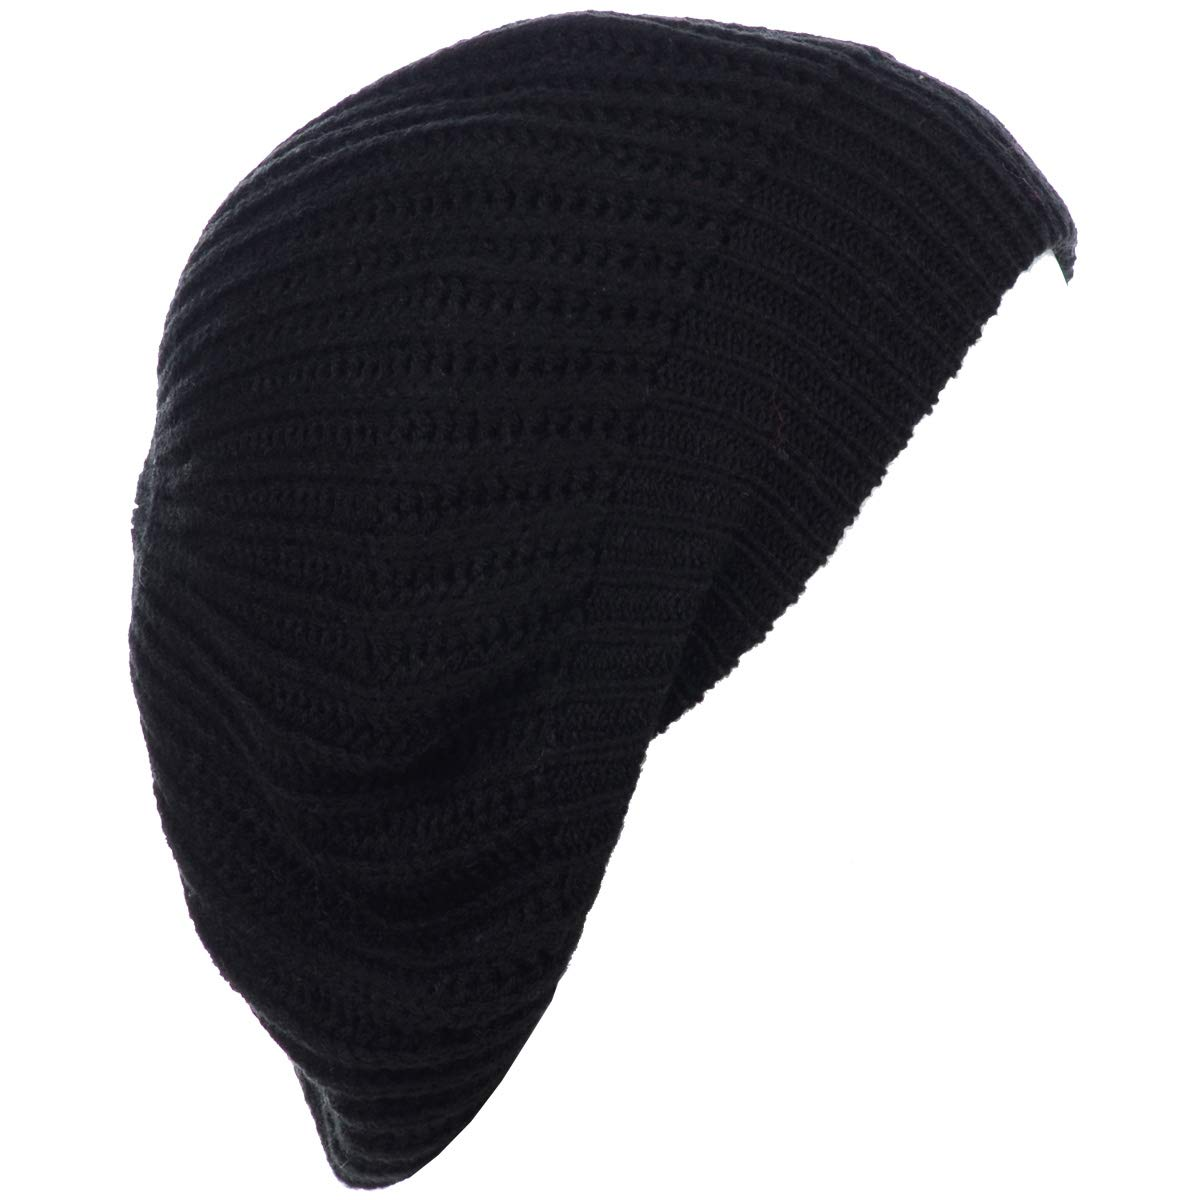 50aa0d469c056 BYOS Ladies Winter Solid Chic Slouchy Ribbed Crochet Knit Beret Beanie Hat W  WO Flower Adornment